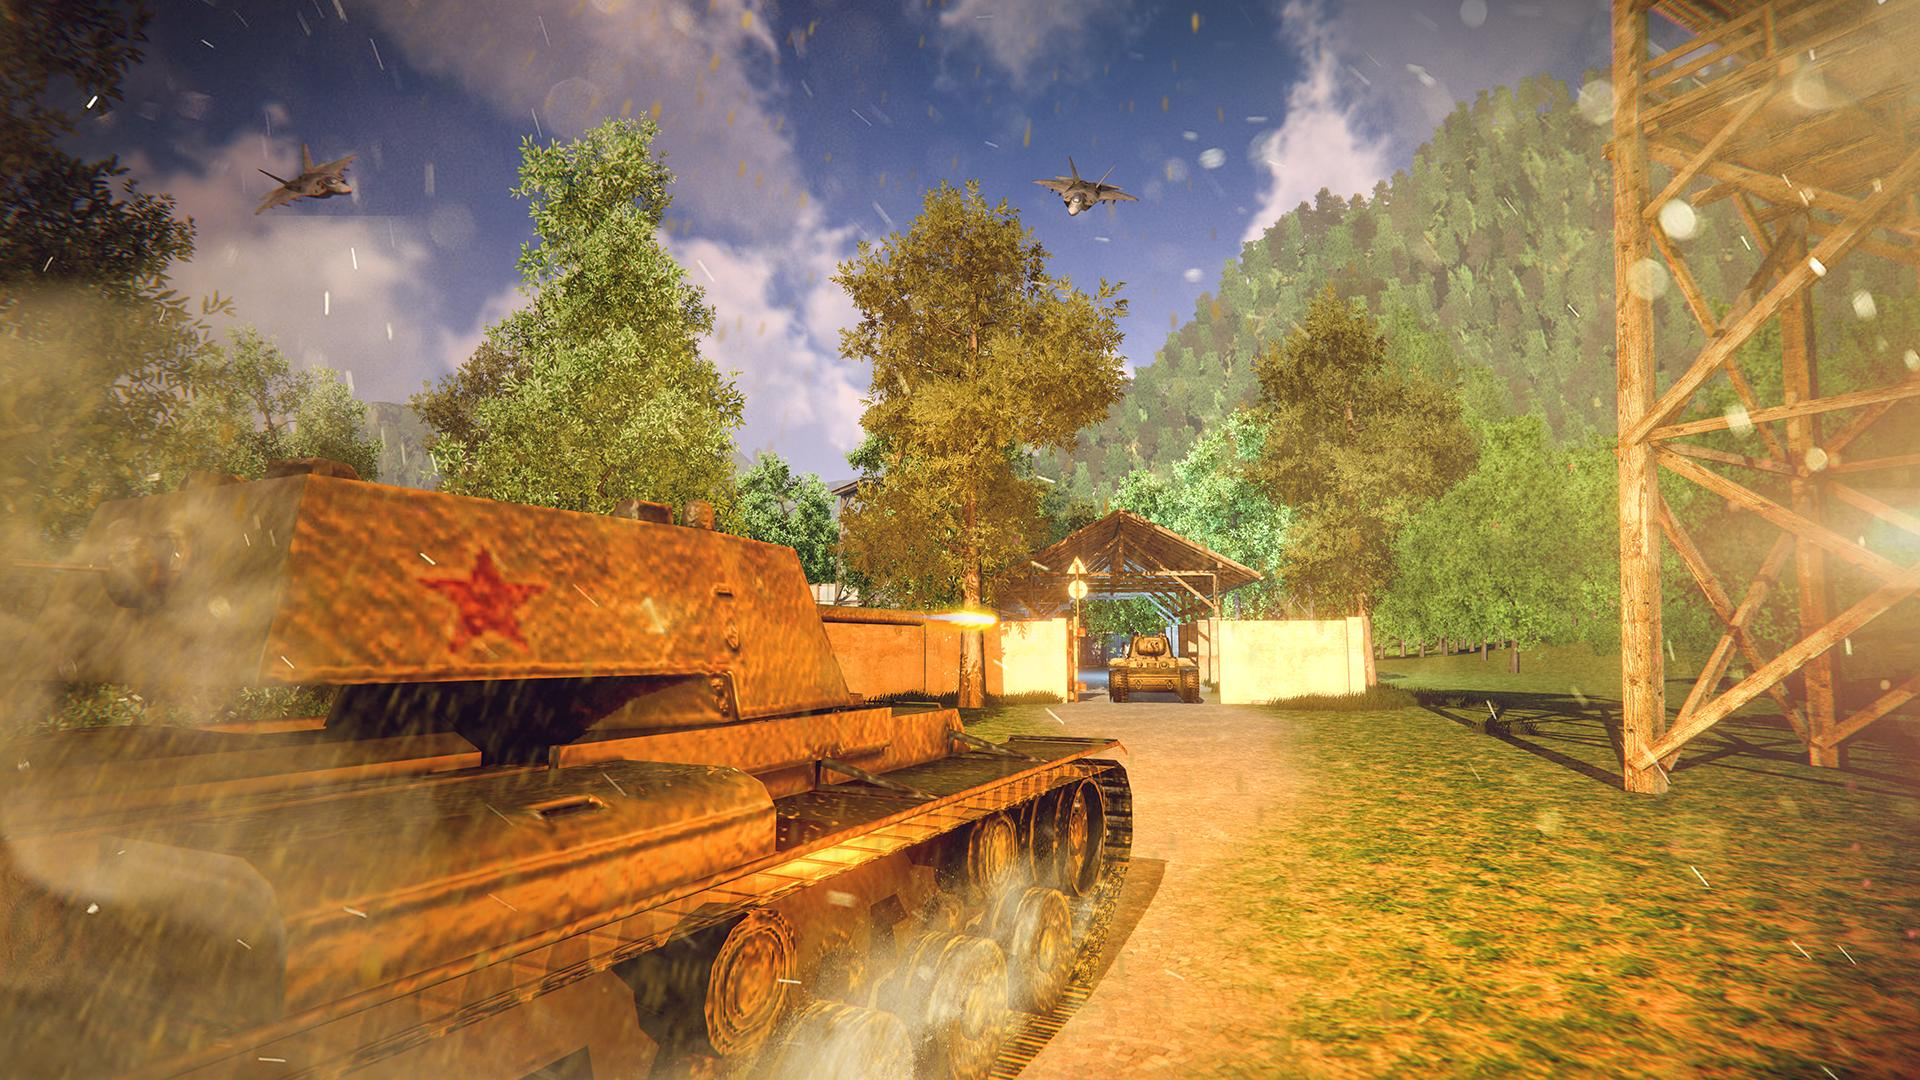 Tank Games 2020 Free Tank Battle Army Combat Games 1.3 Screenshot 4